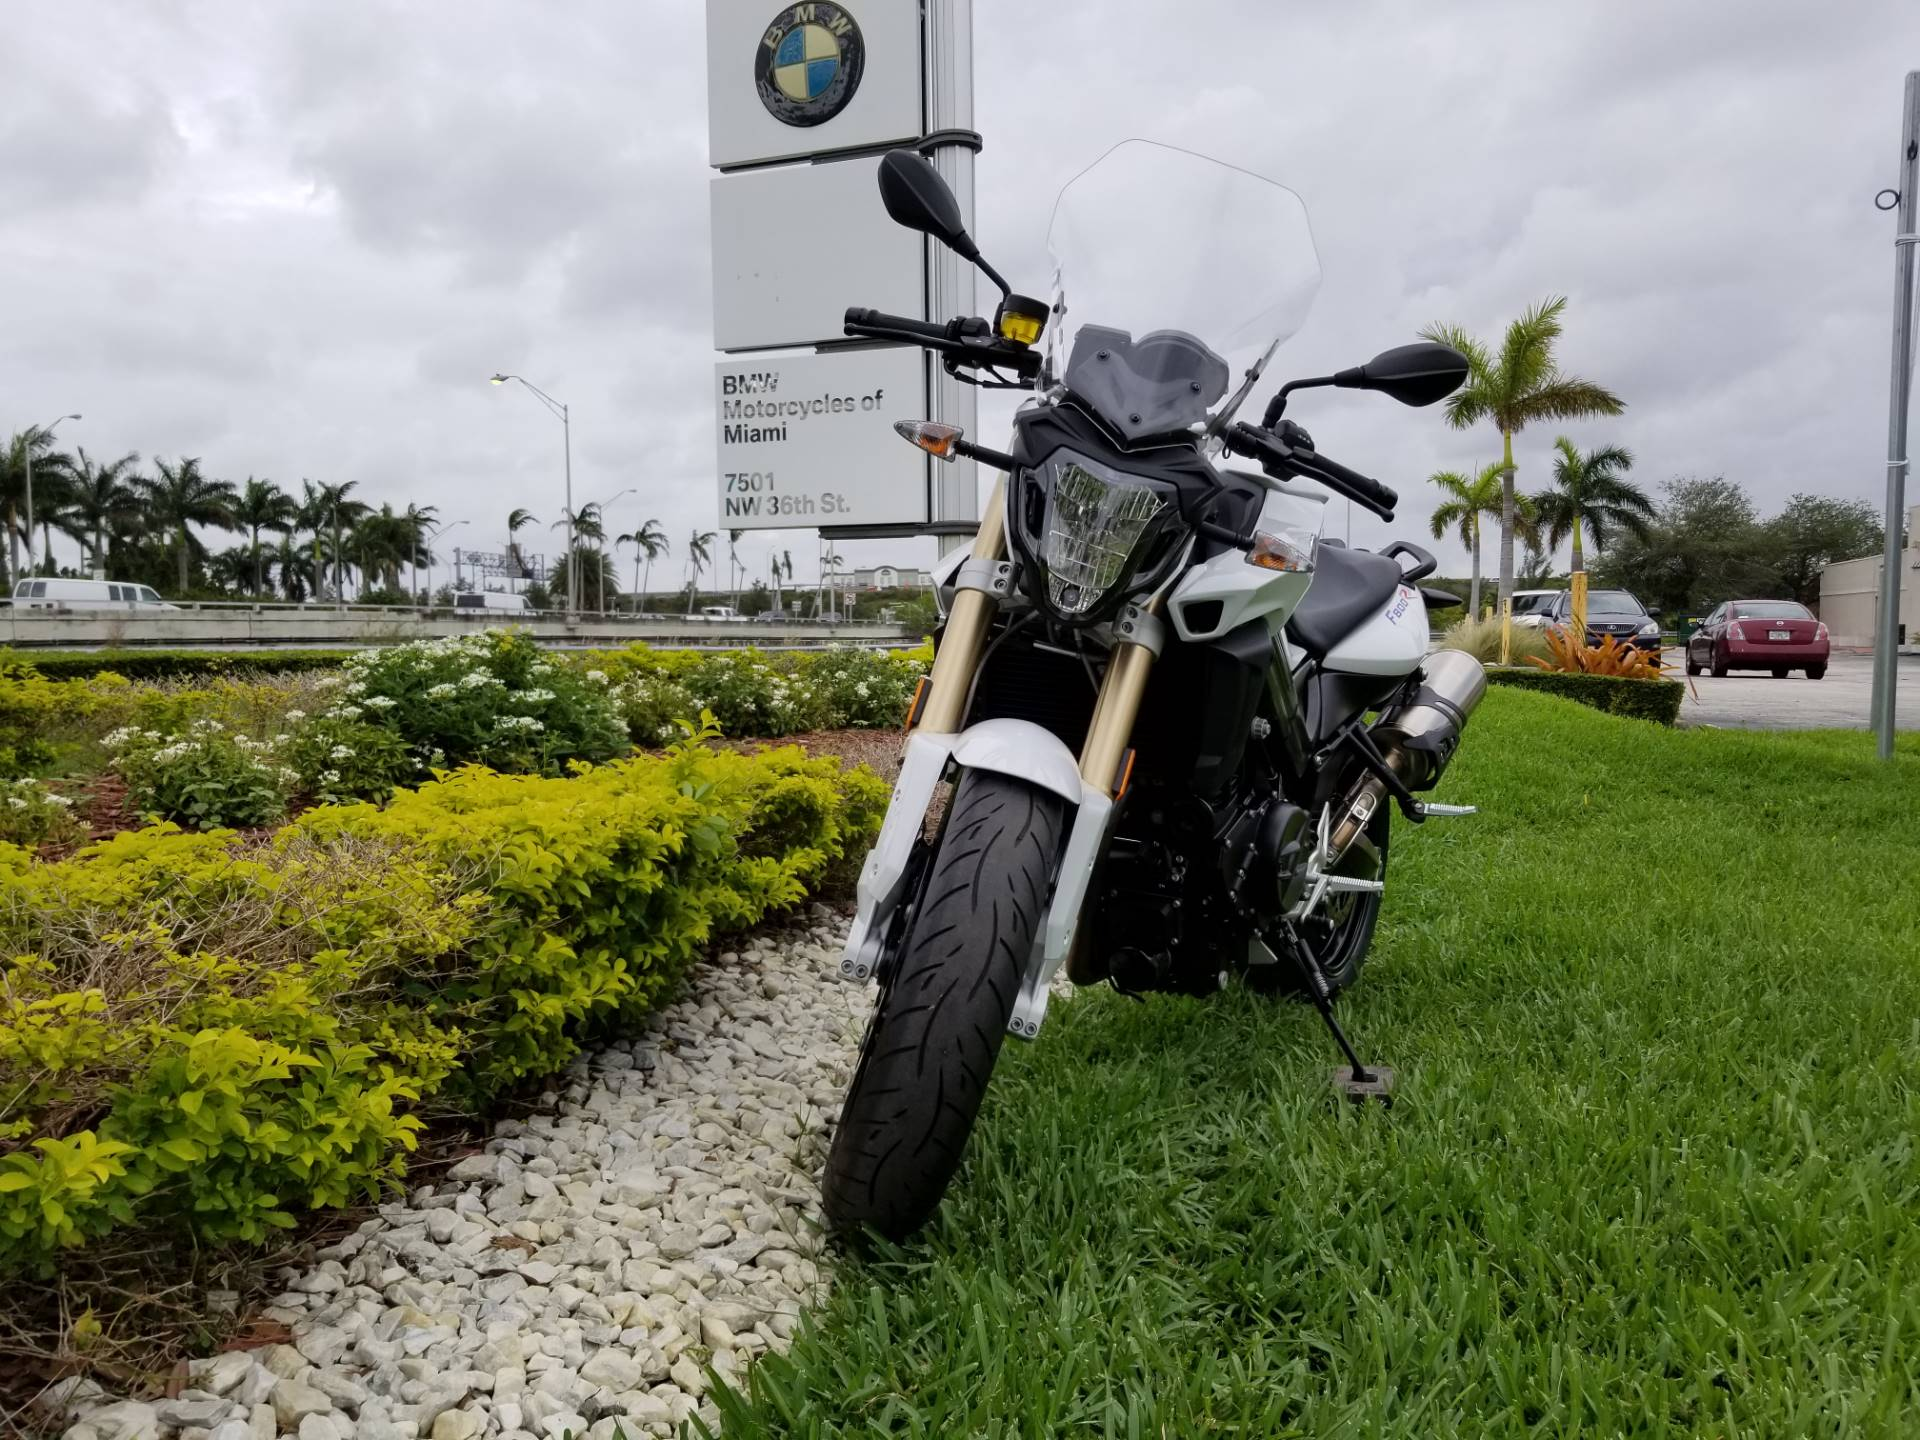 Used 2015 BMW F 800 R For Sale, Pre Owned BMW R 800R For Sale, BMW Roadster, Pre-Owned BMW Motorcycle F800R, BMW Motorcycle, Roadster, Naked Bike, BMW